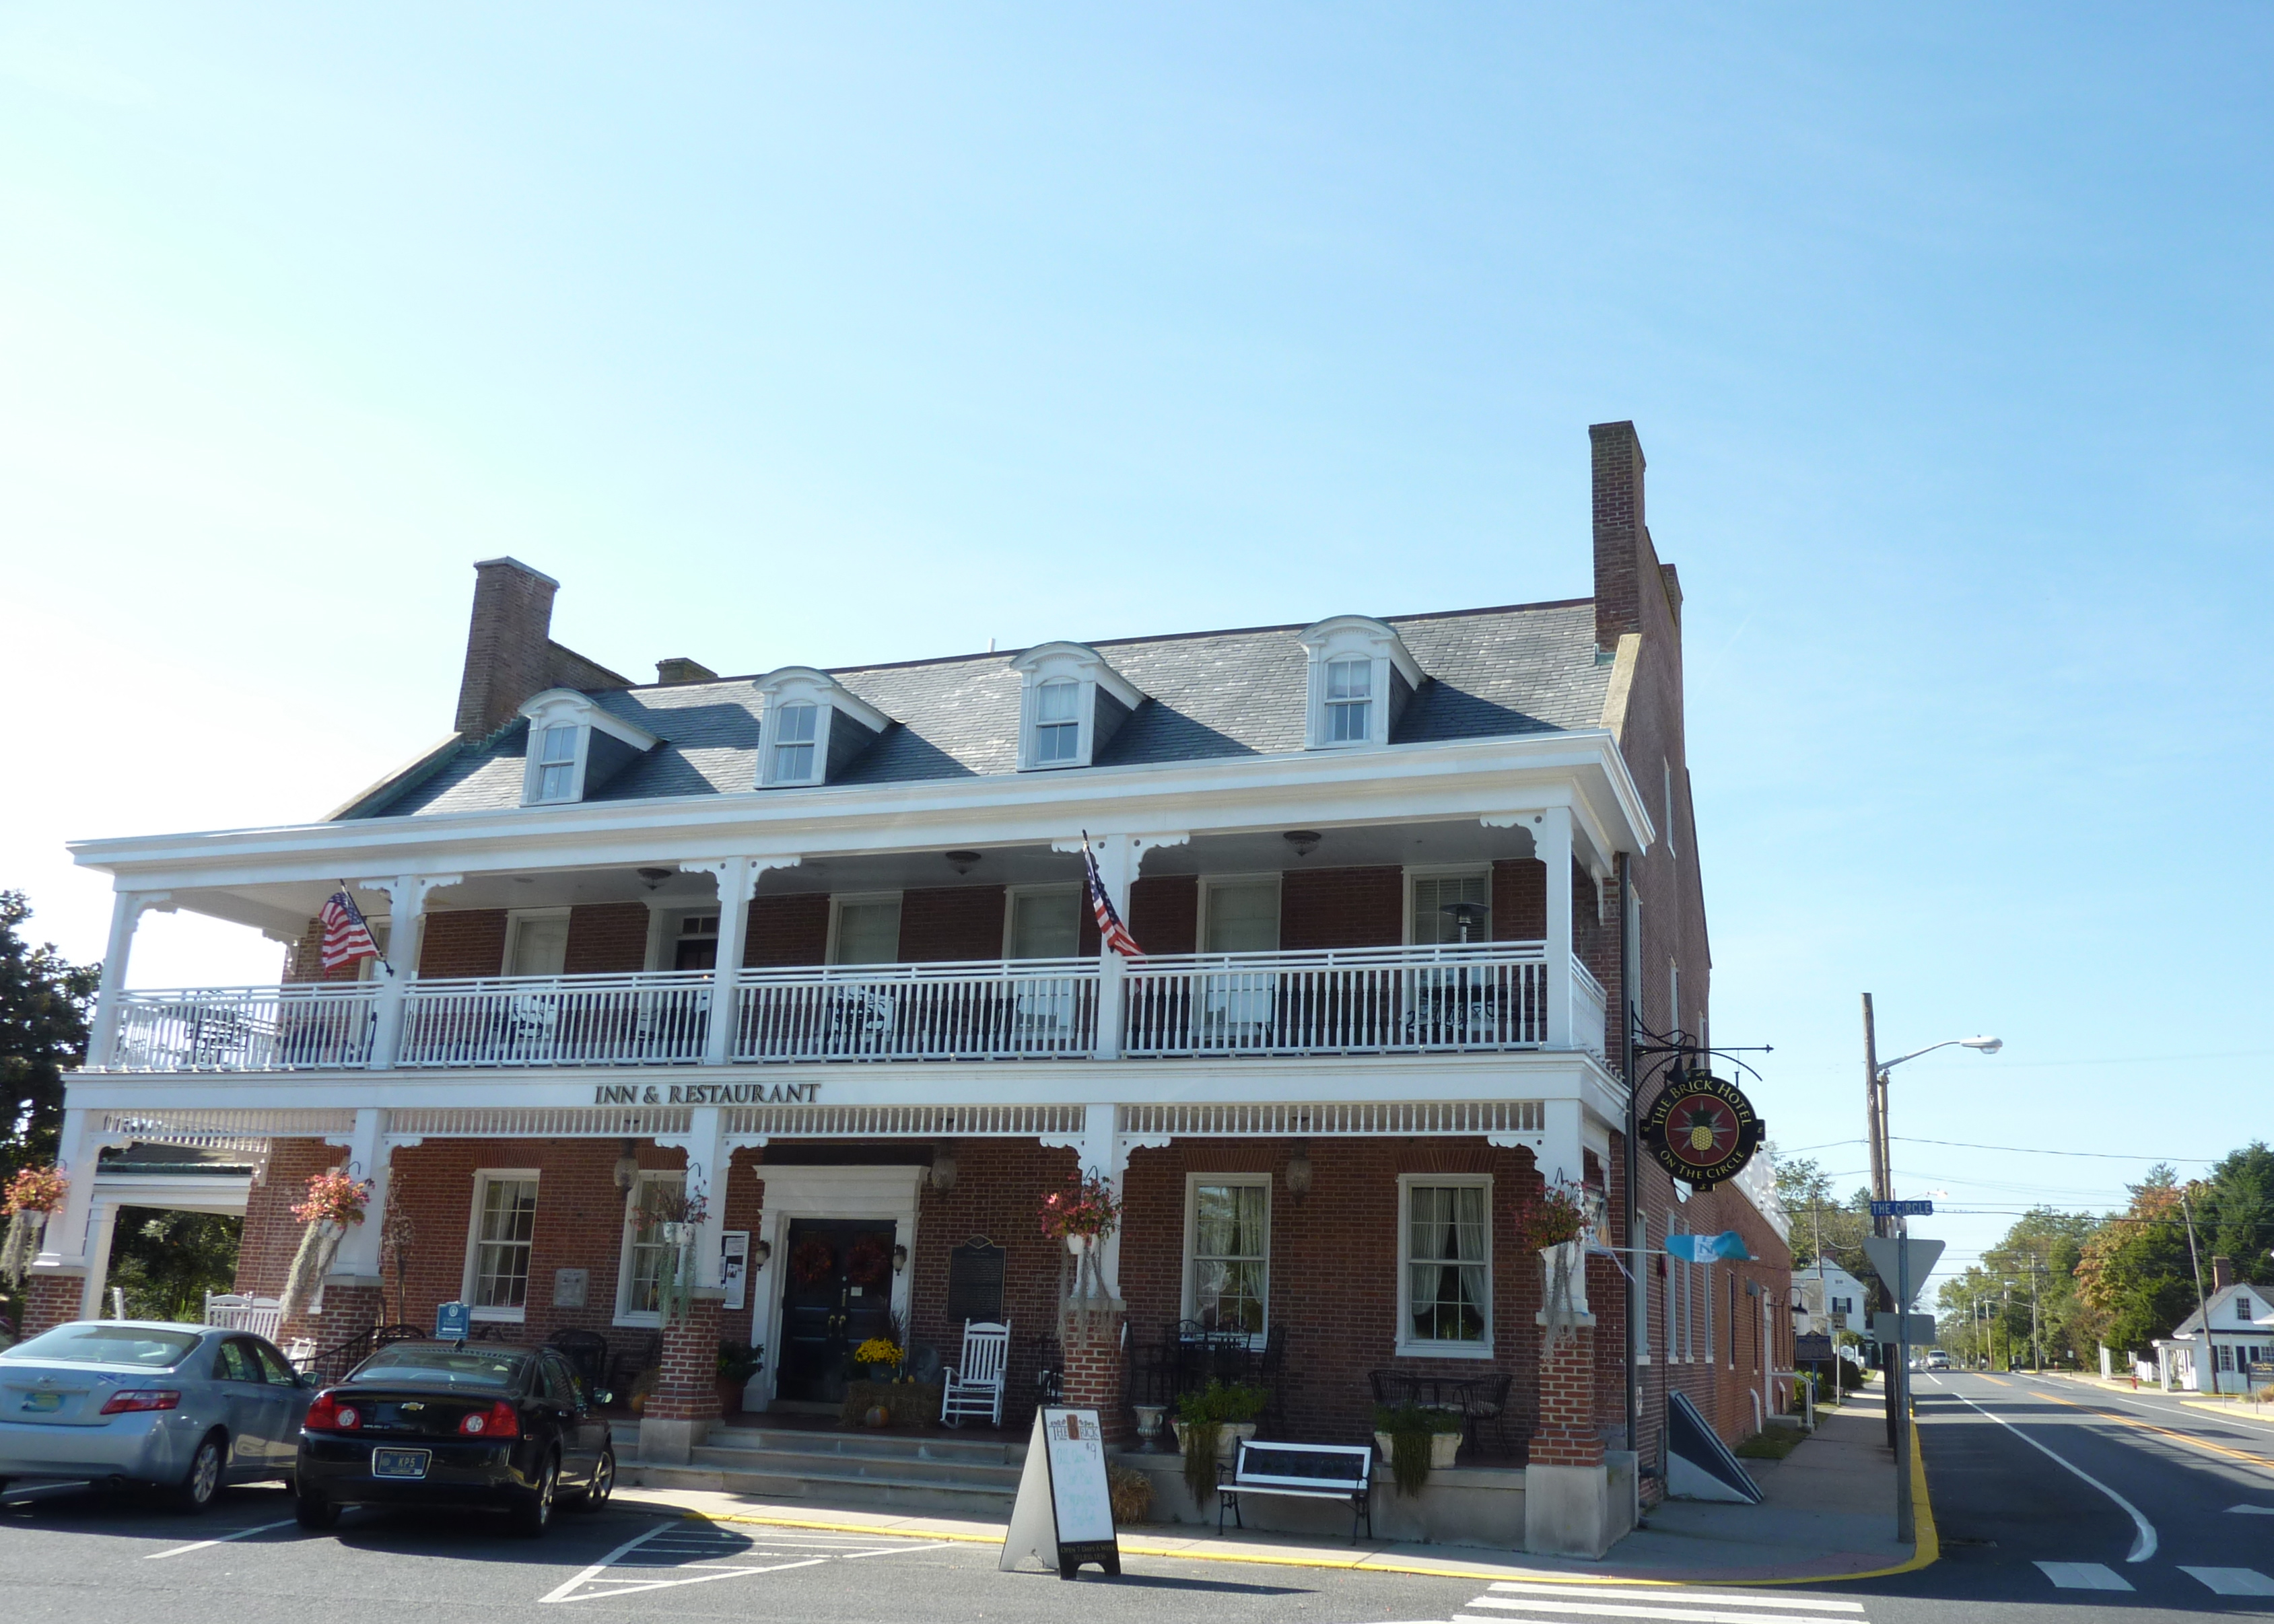 Brick Hotel Georgetown De Review The On Circle